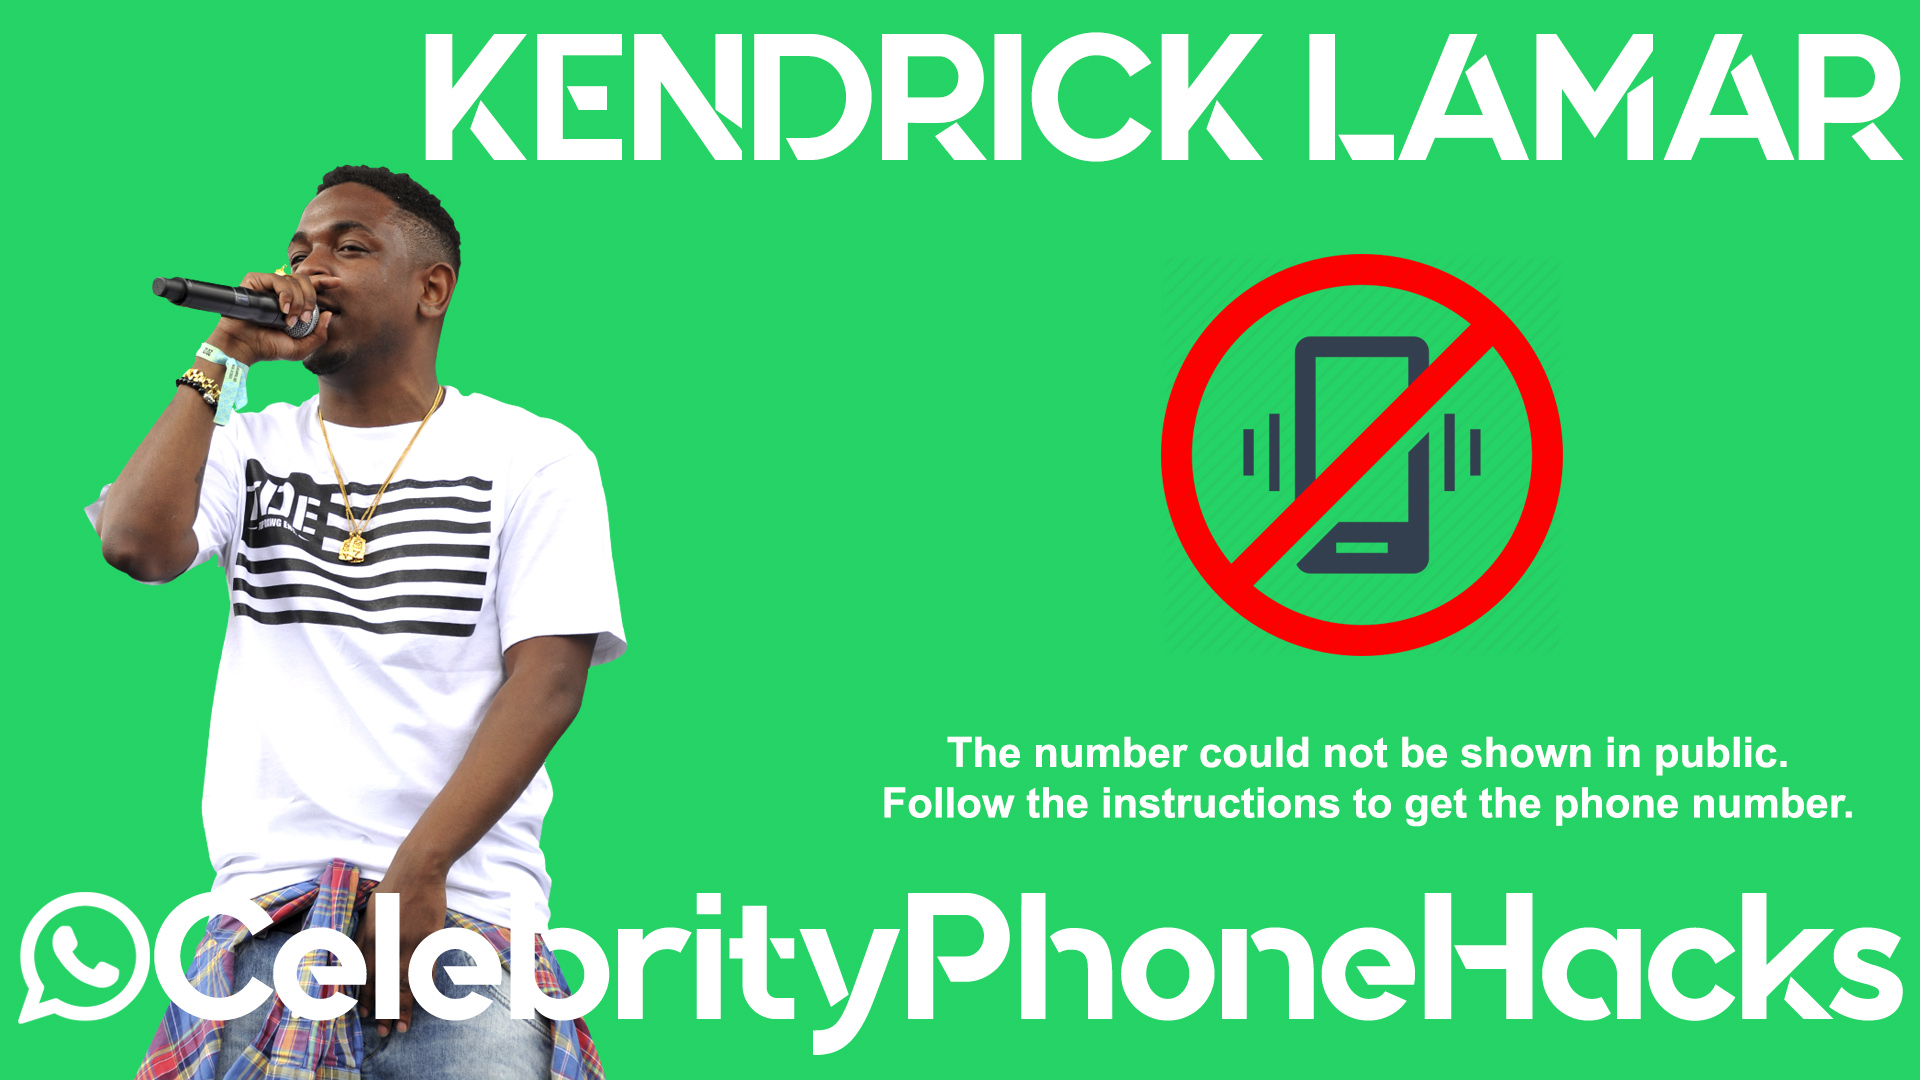 Kendrick Lamar real phone number 2019 whatsapp hacked leaked